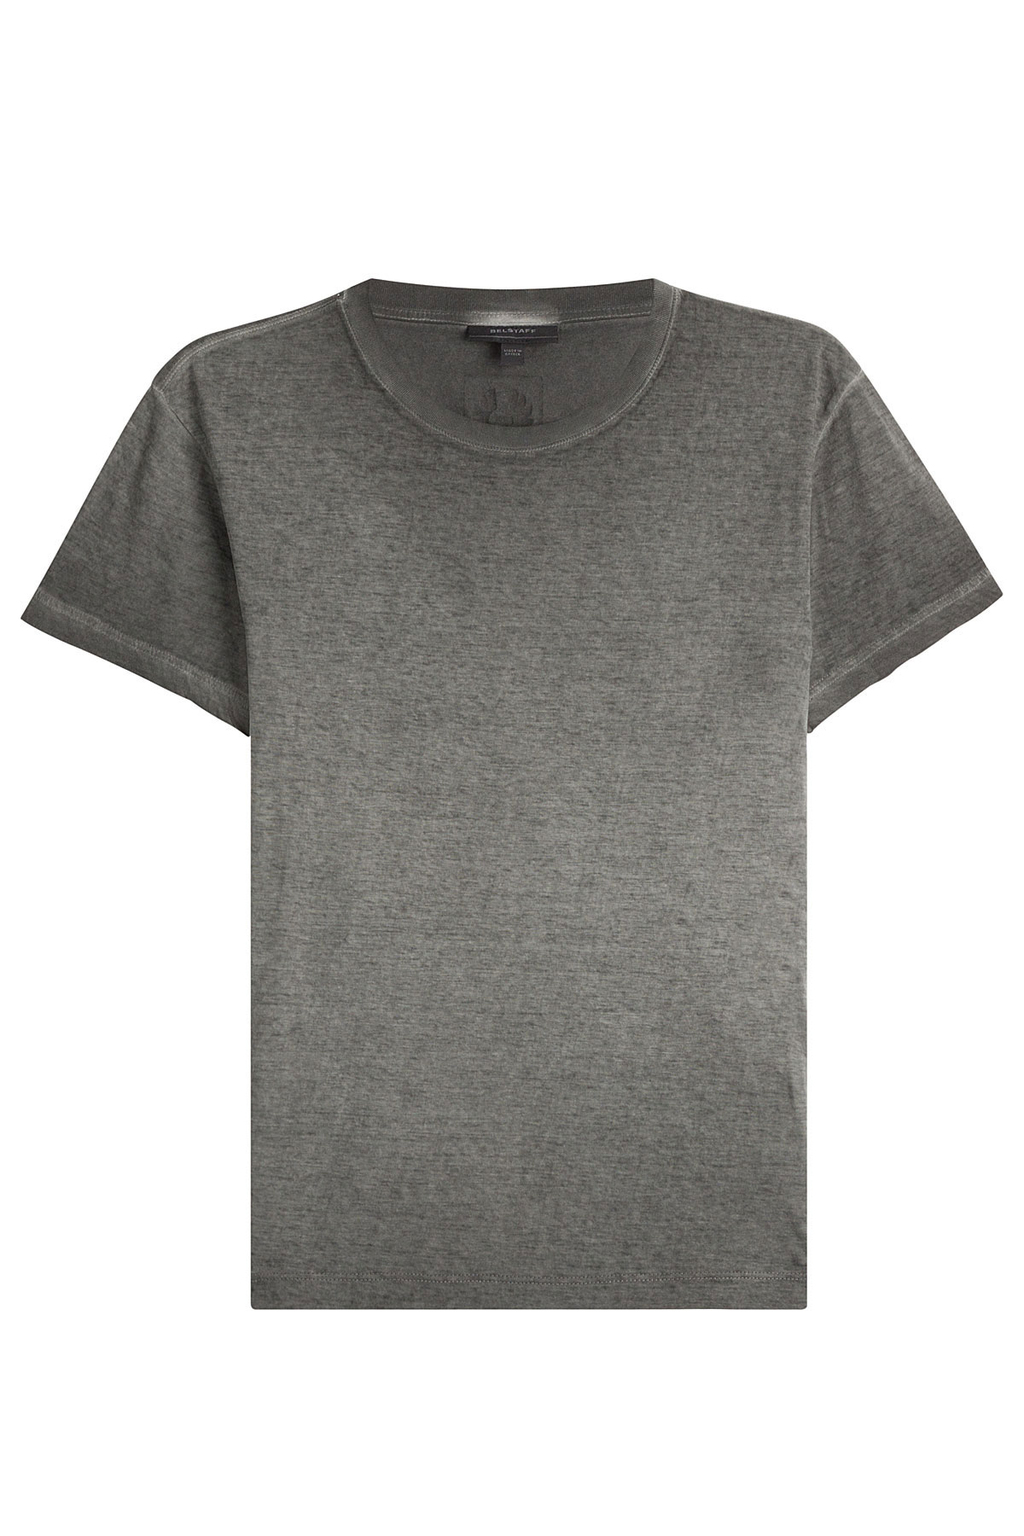 Cotton T Shirt Black - pattern: plain; style: t-shirt; predominant colour: mid grey; occasions: casual; length: standard; fibres: cotton - 100%; fit: body skimming; neckline: crew; sleeve length: short sleeve; sleeve style: standard; pattern type: fabric; texture group: jersey - stretchy/drapey; season: a/w 2016